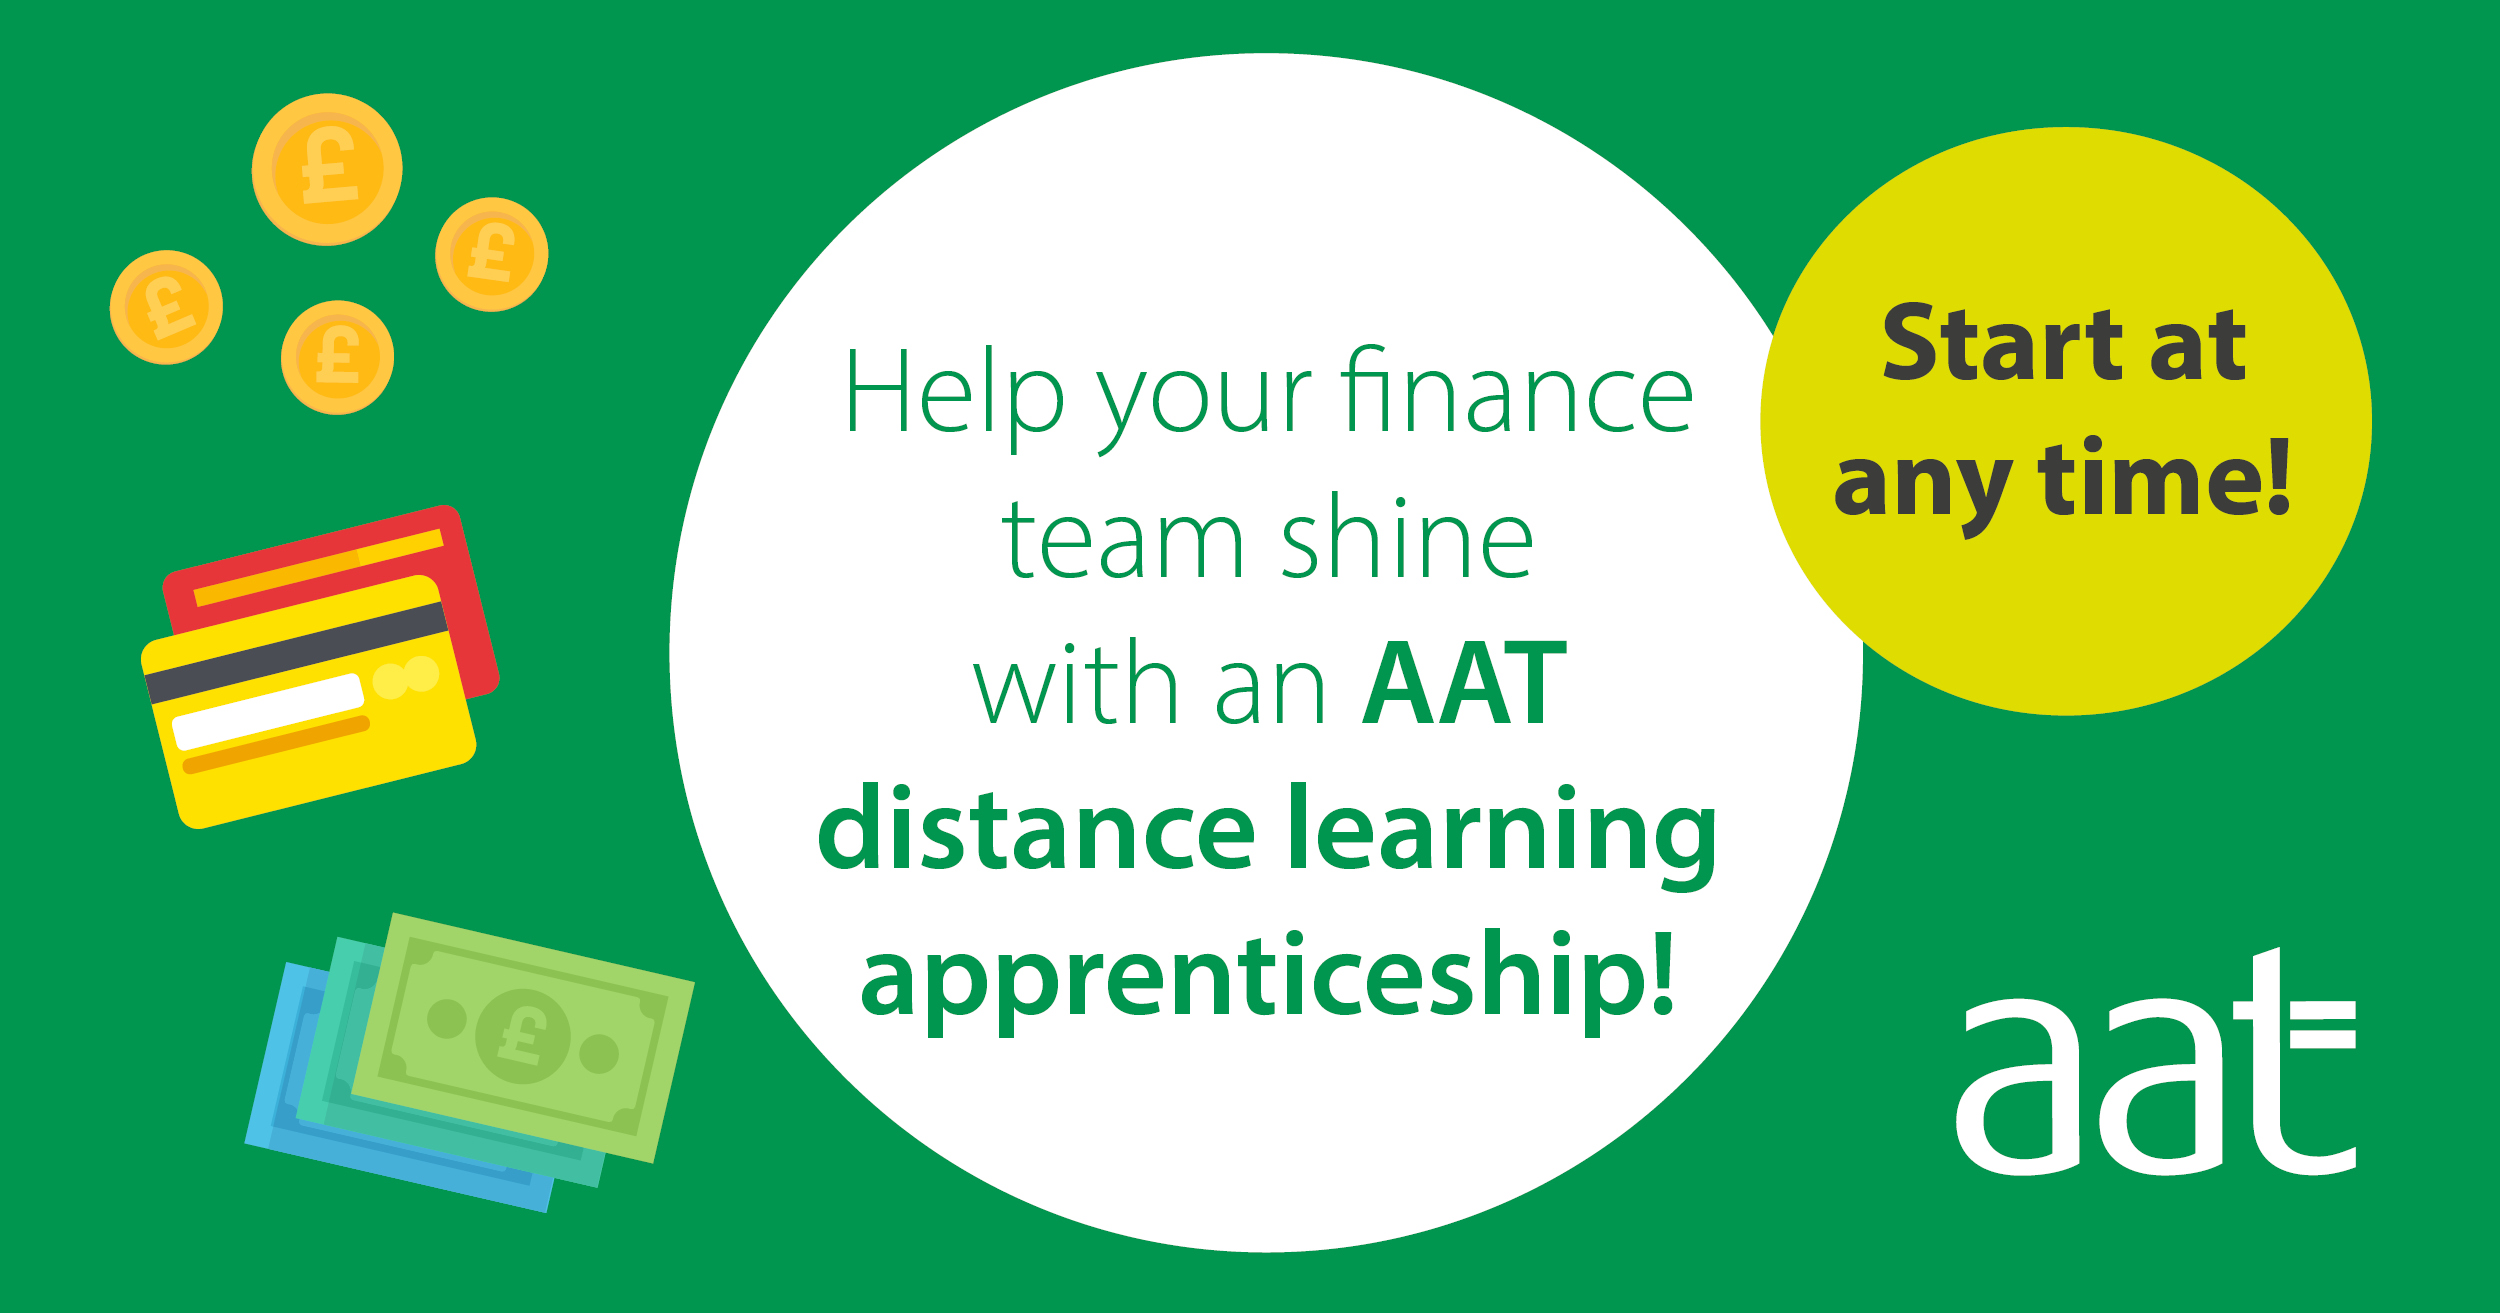 Help your finance team shine with an AAT distance learning apprenticeship!